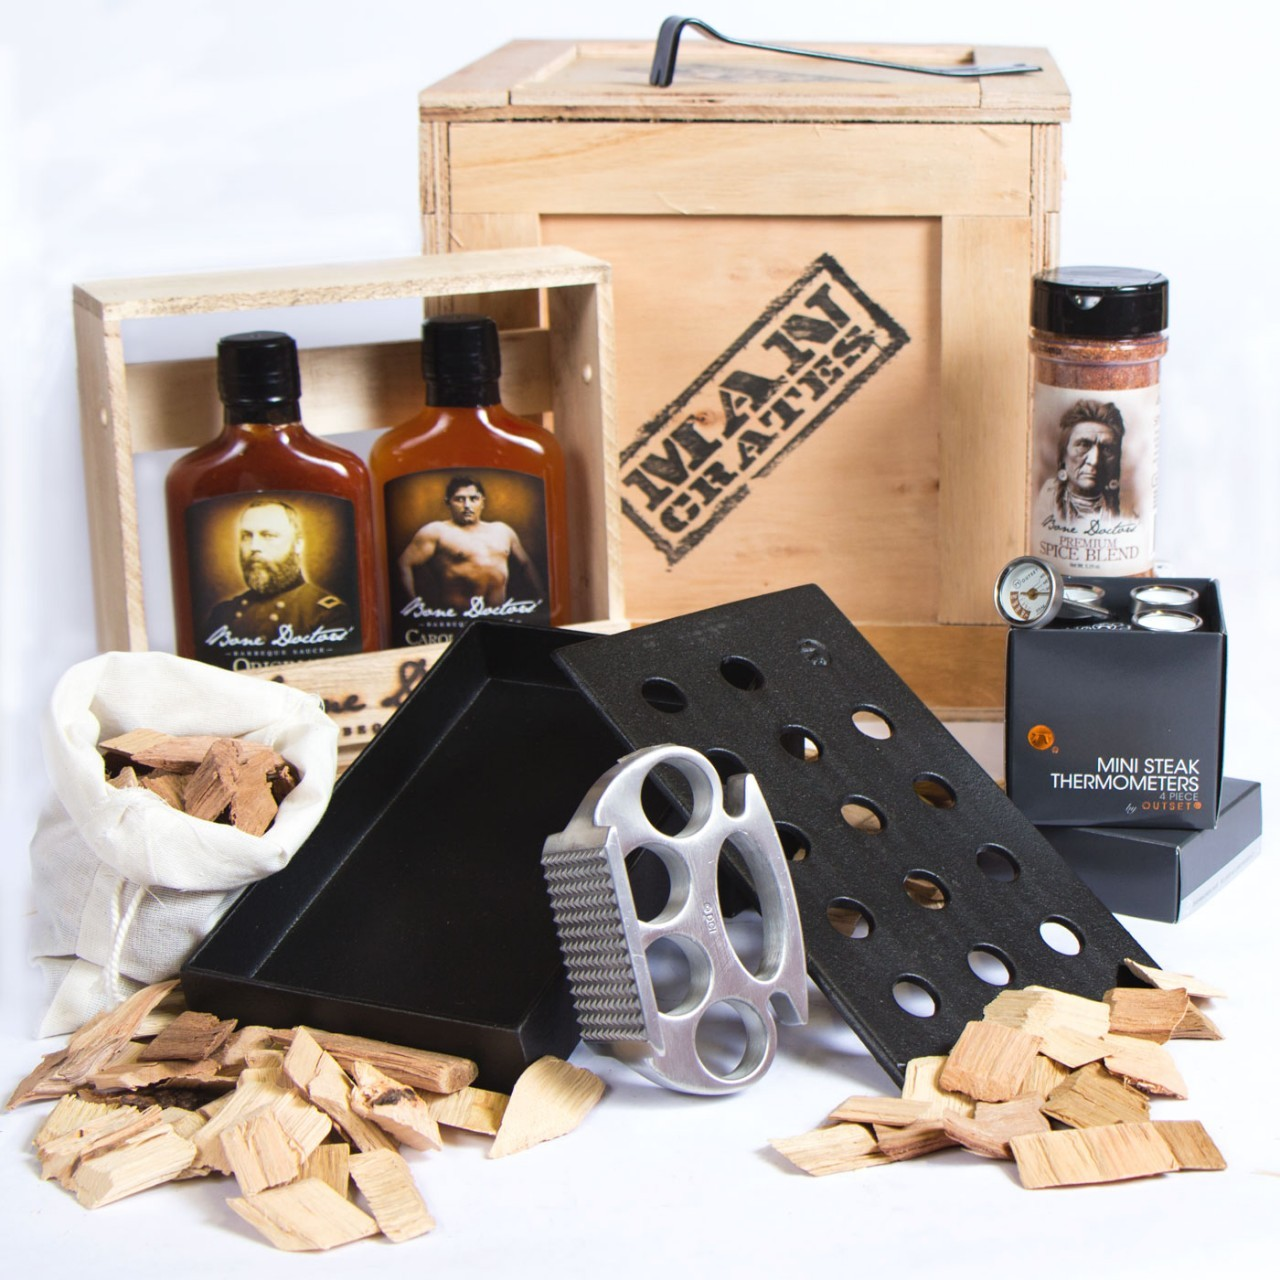 Cool Car Gifts For Guys: Man Crates Celebrates Father's Day With Epic Gifts Men Love